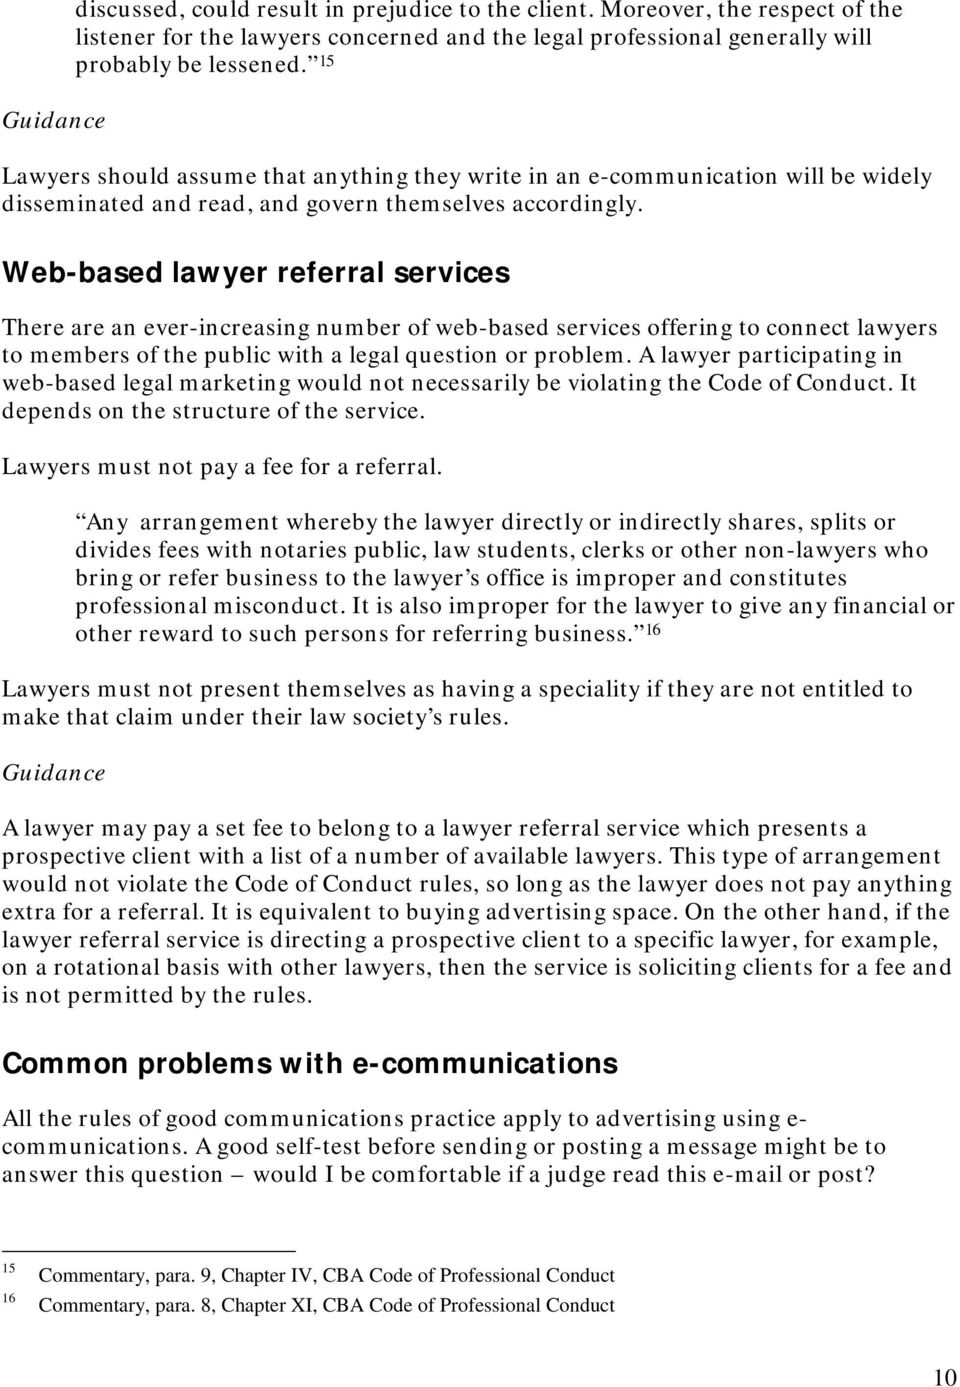 Web-based lawyer referral services There are an ever-increasing number of web-based services offering to connect lawyers to members of the public with a legal question or problem.